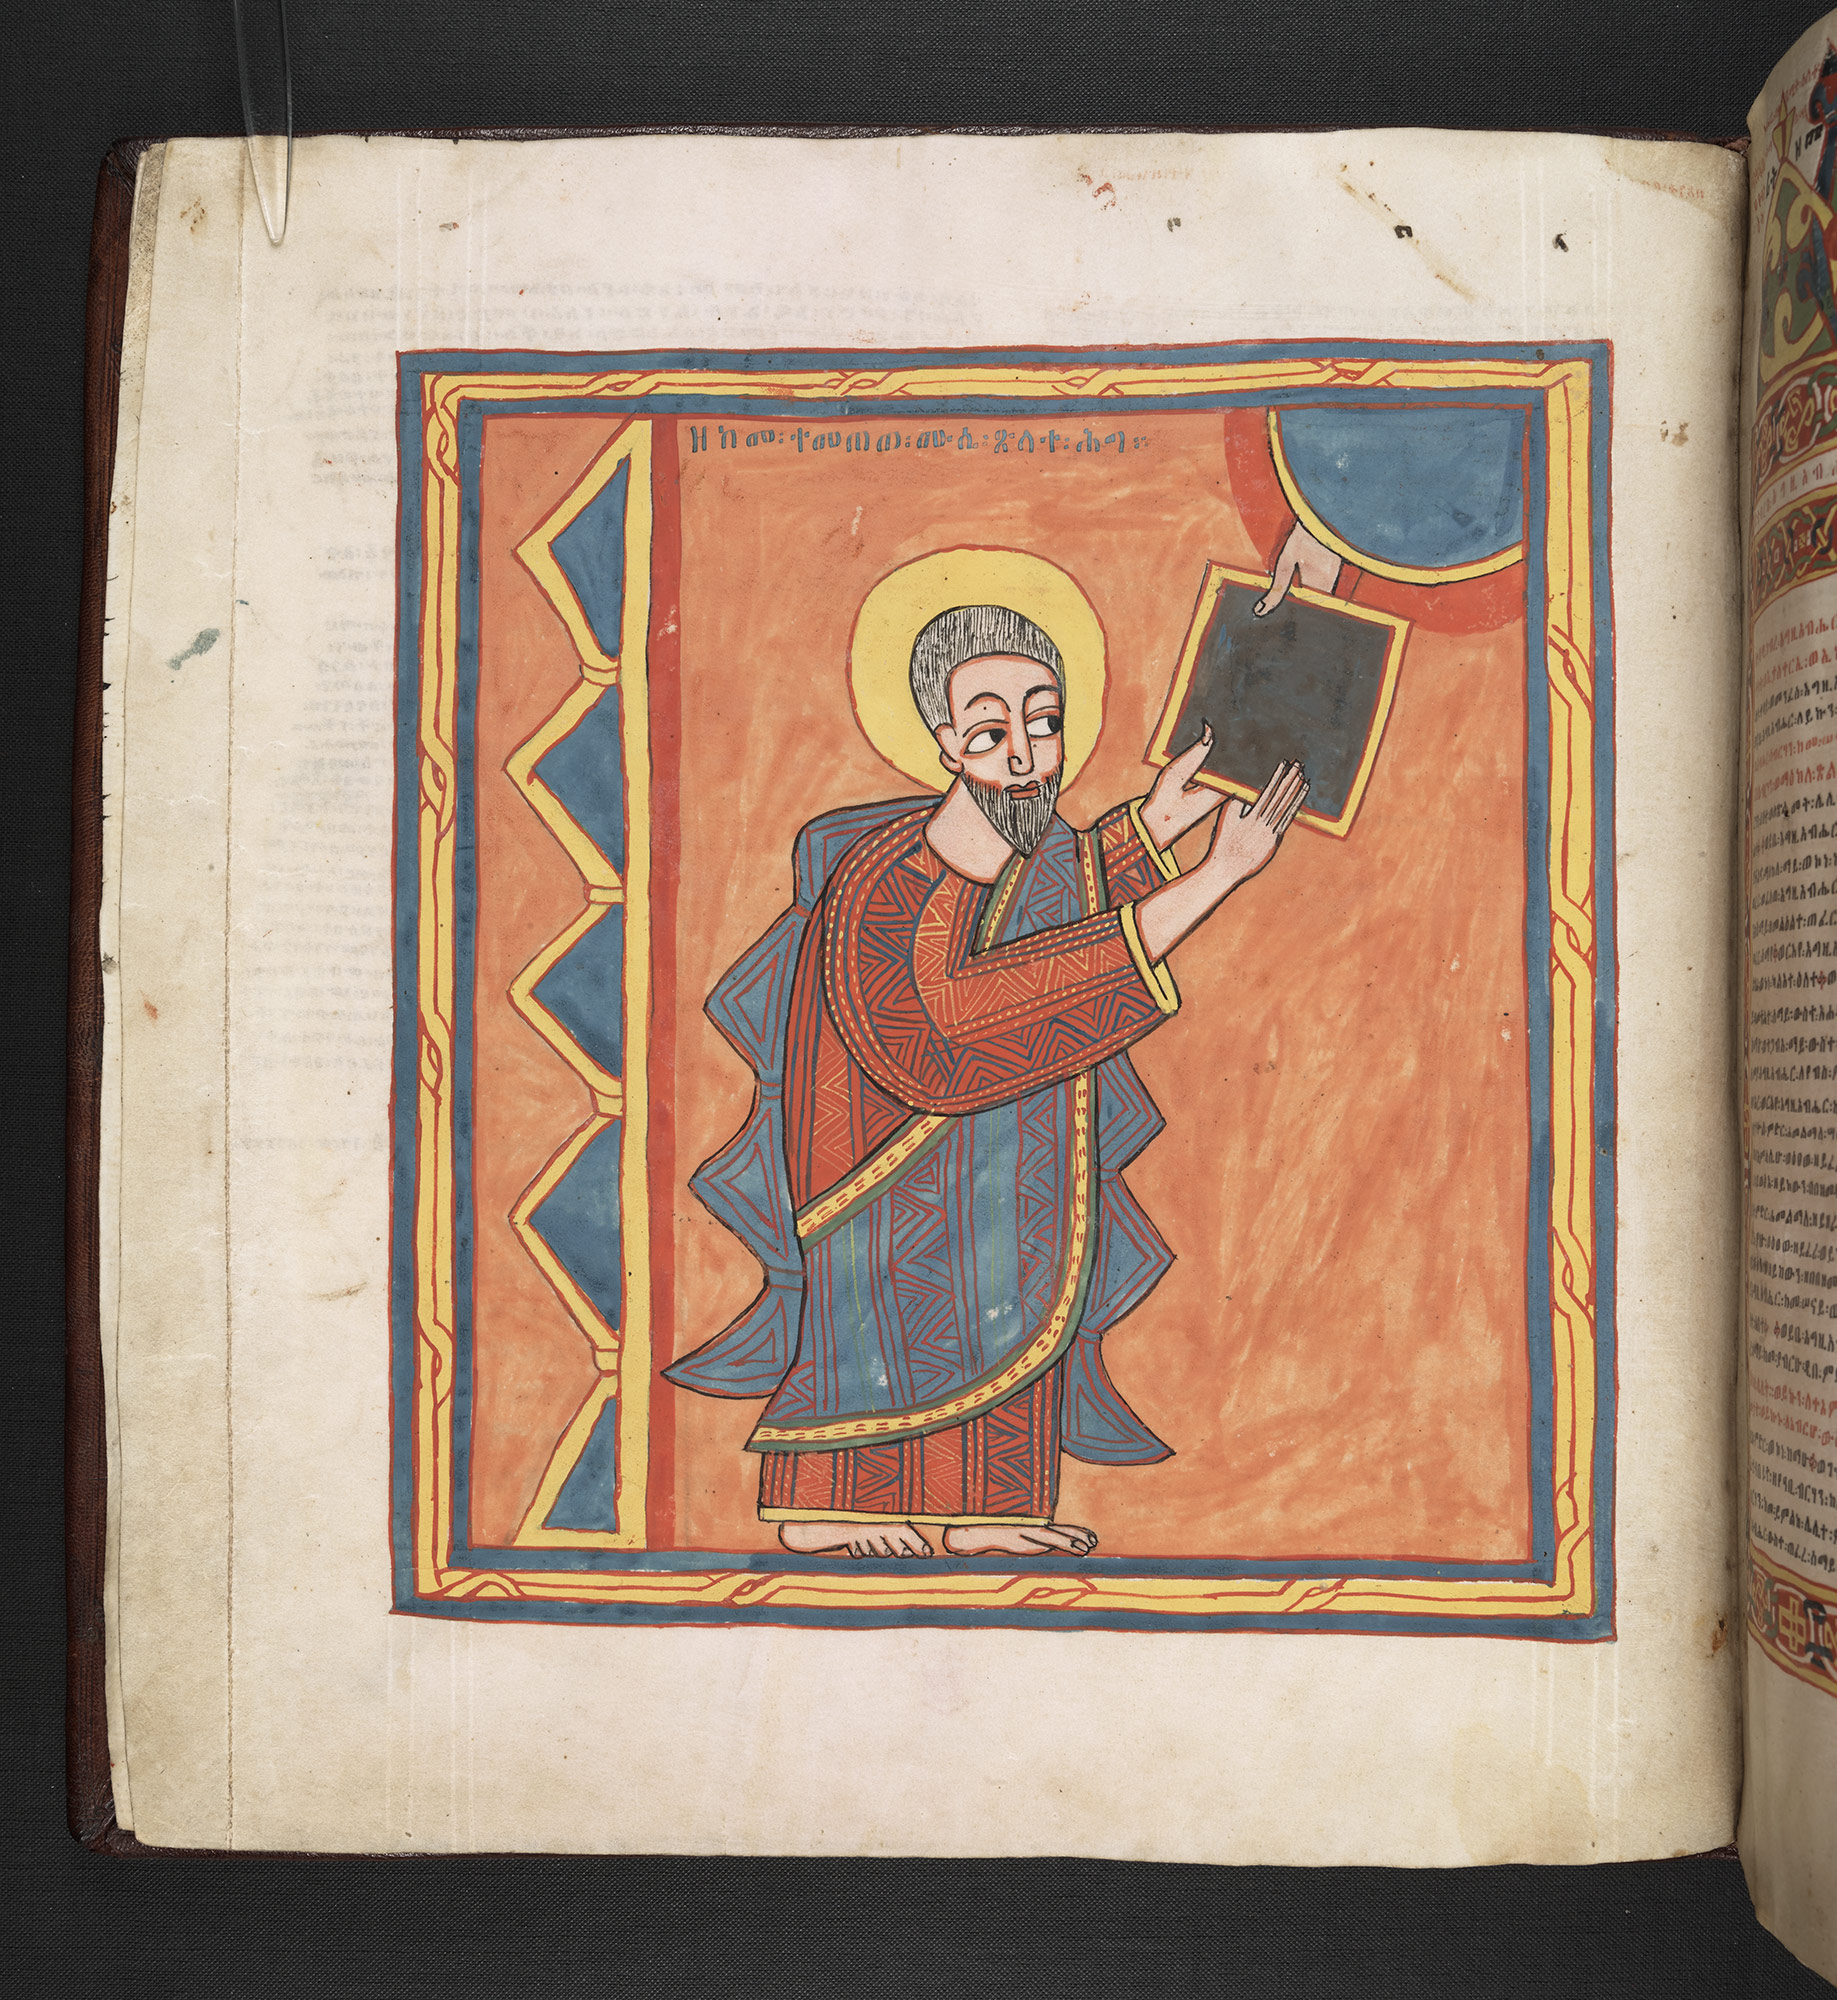 Ethiopic Bible - The British Library